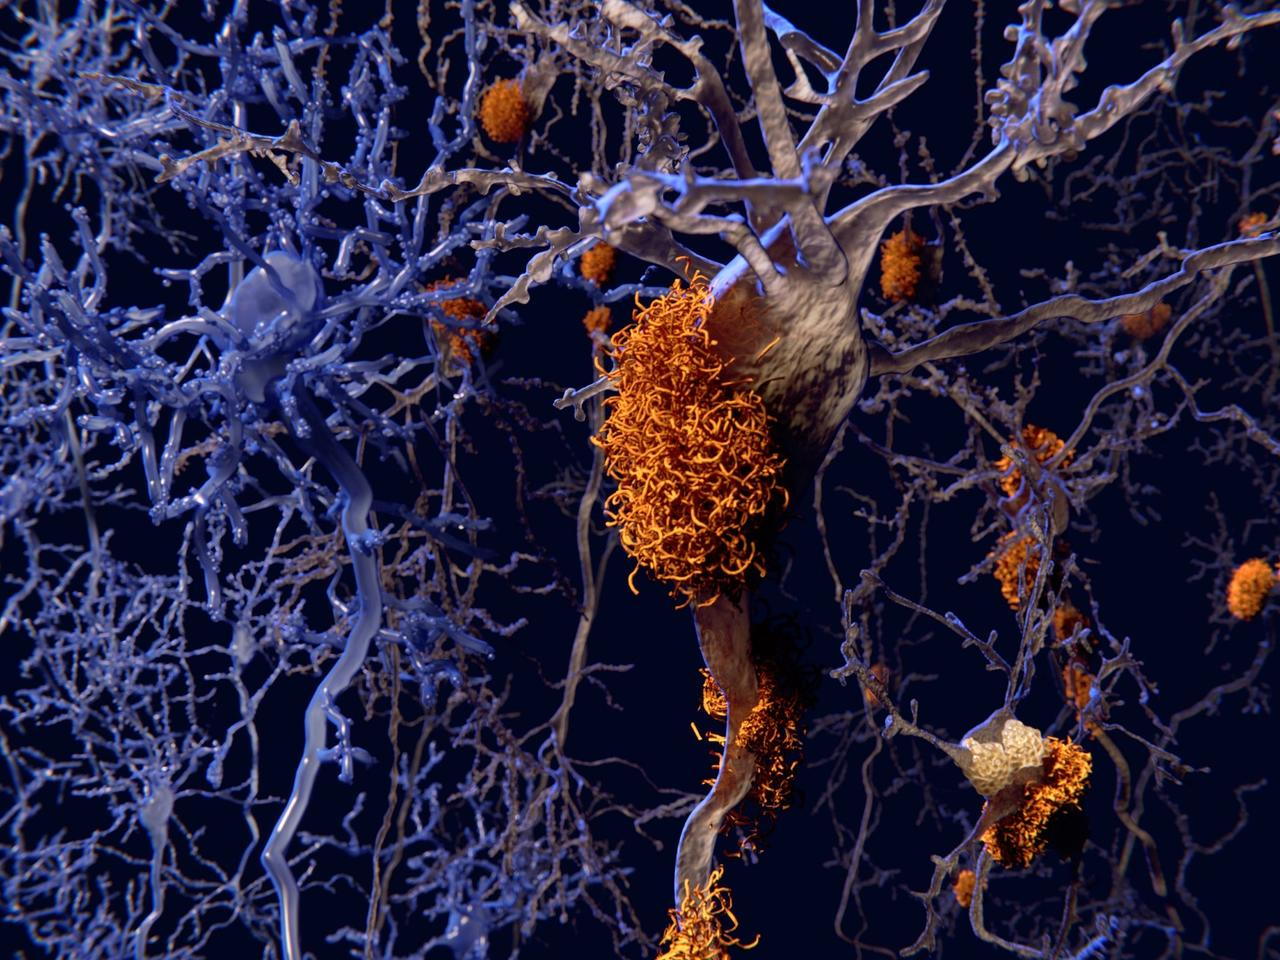 A promising new Alzheimer's drug that works by breaking down toxic amyloid beta proteins has passed Phase I safety testing and now moves into human trials to evaluate efficacy